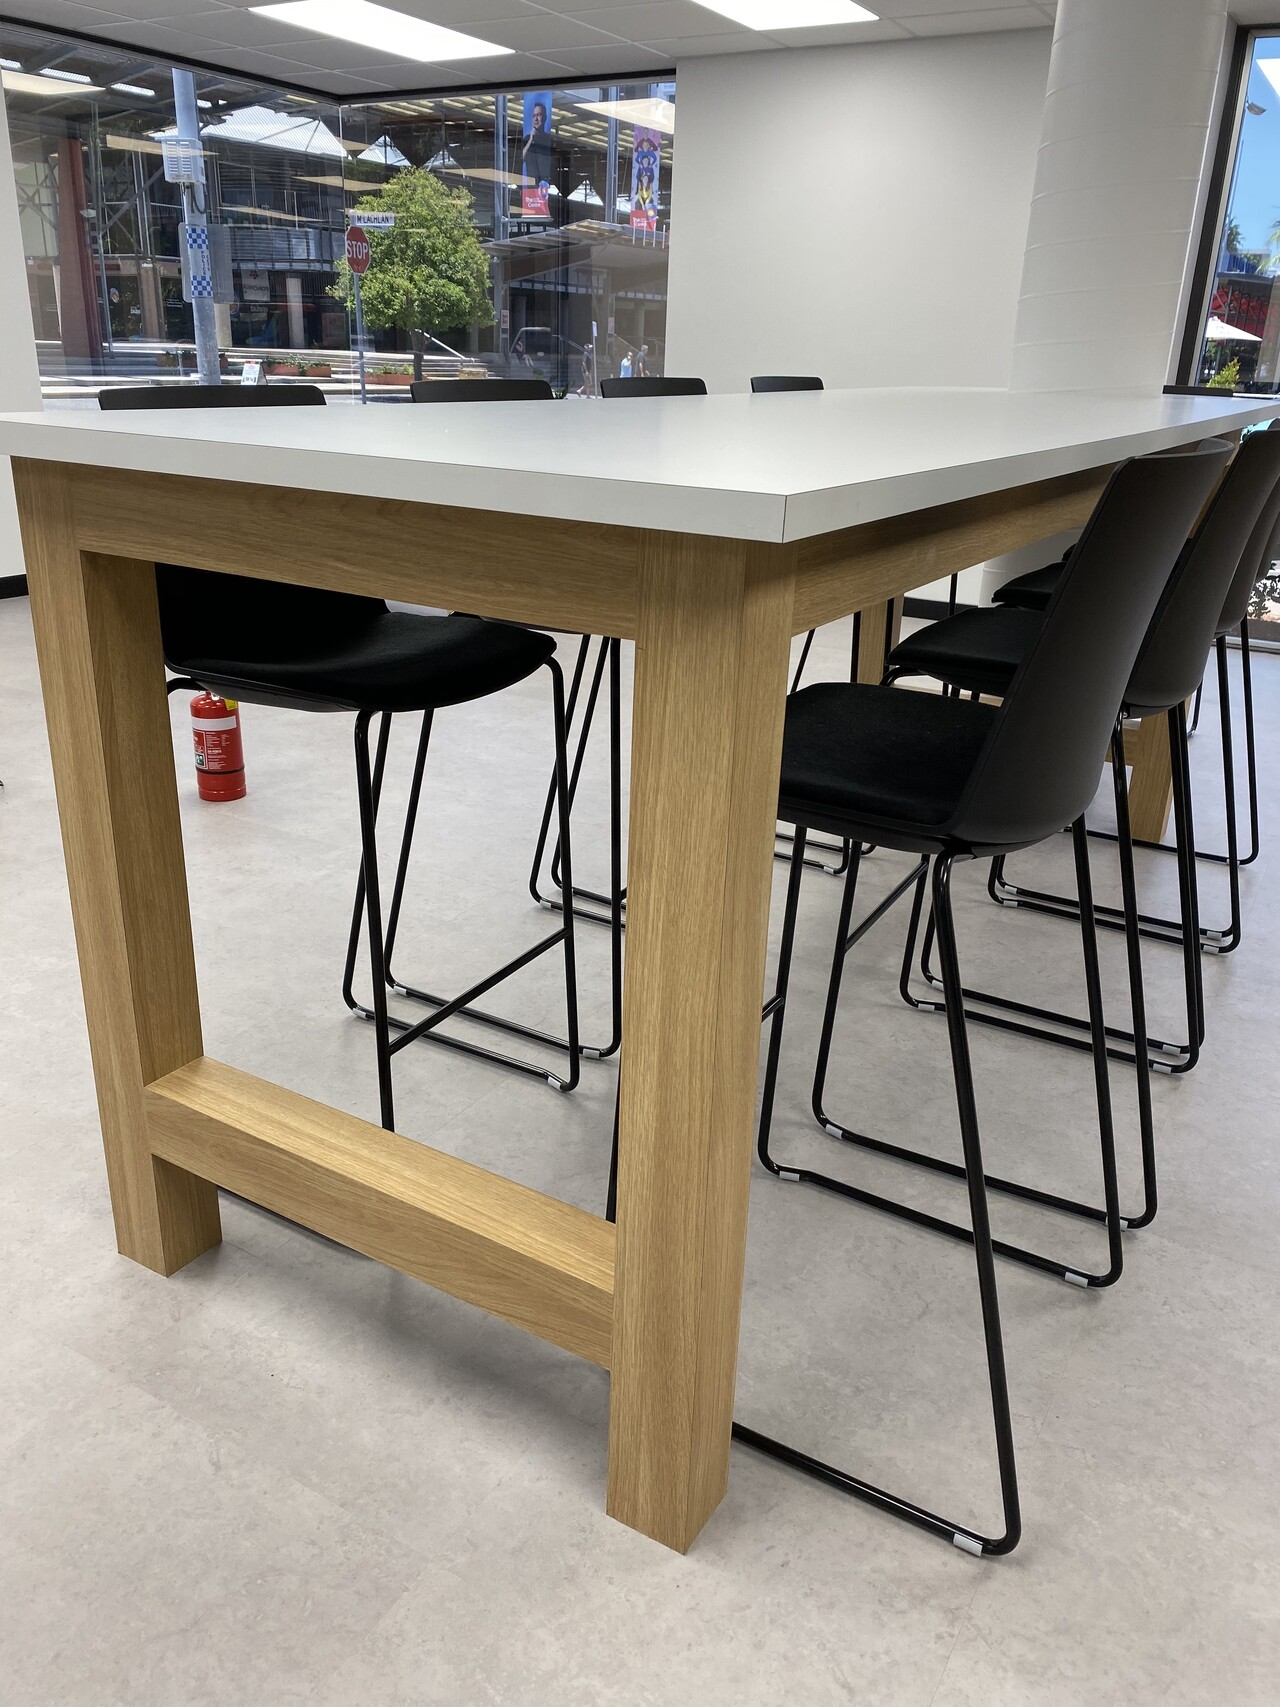 IMG_20191119_123039 working table with high chairs home office furniture darwin